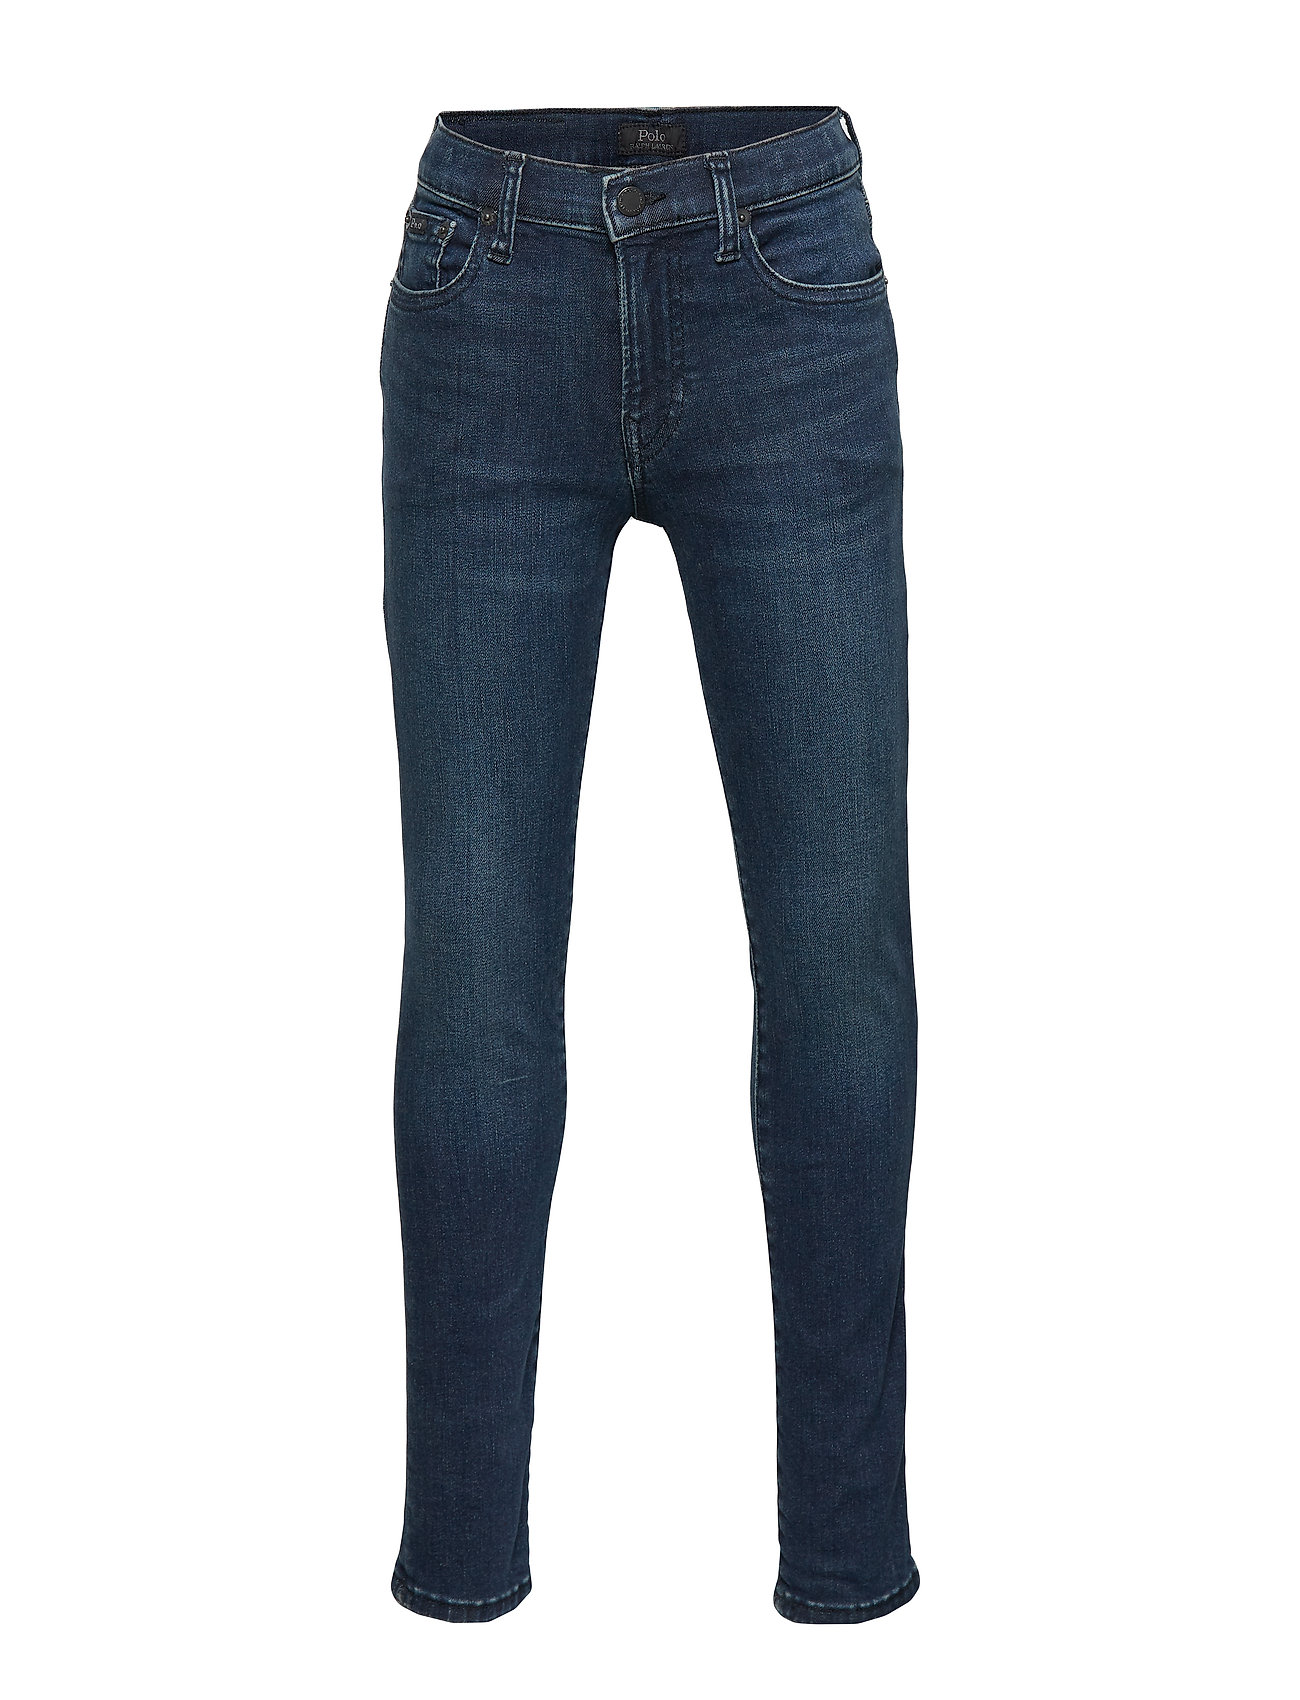 Ralph Lauren Kids Eldridge Skinny Stretch Jean - PEYTON WASH